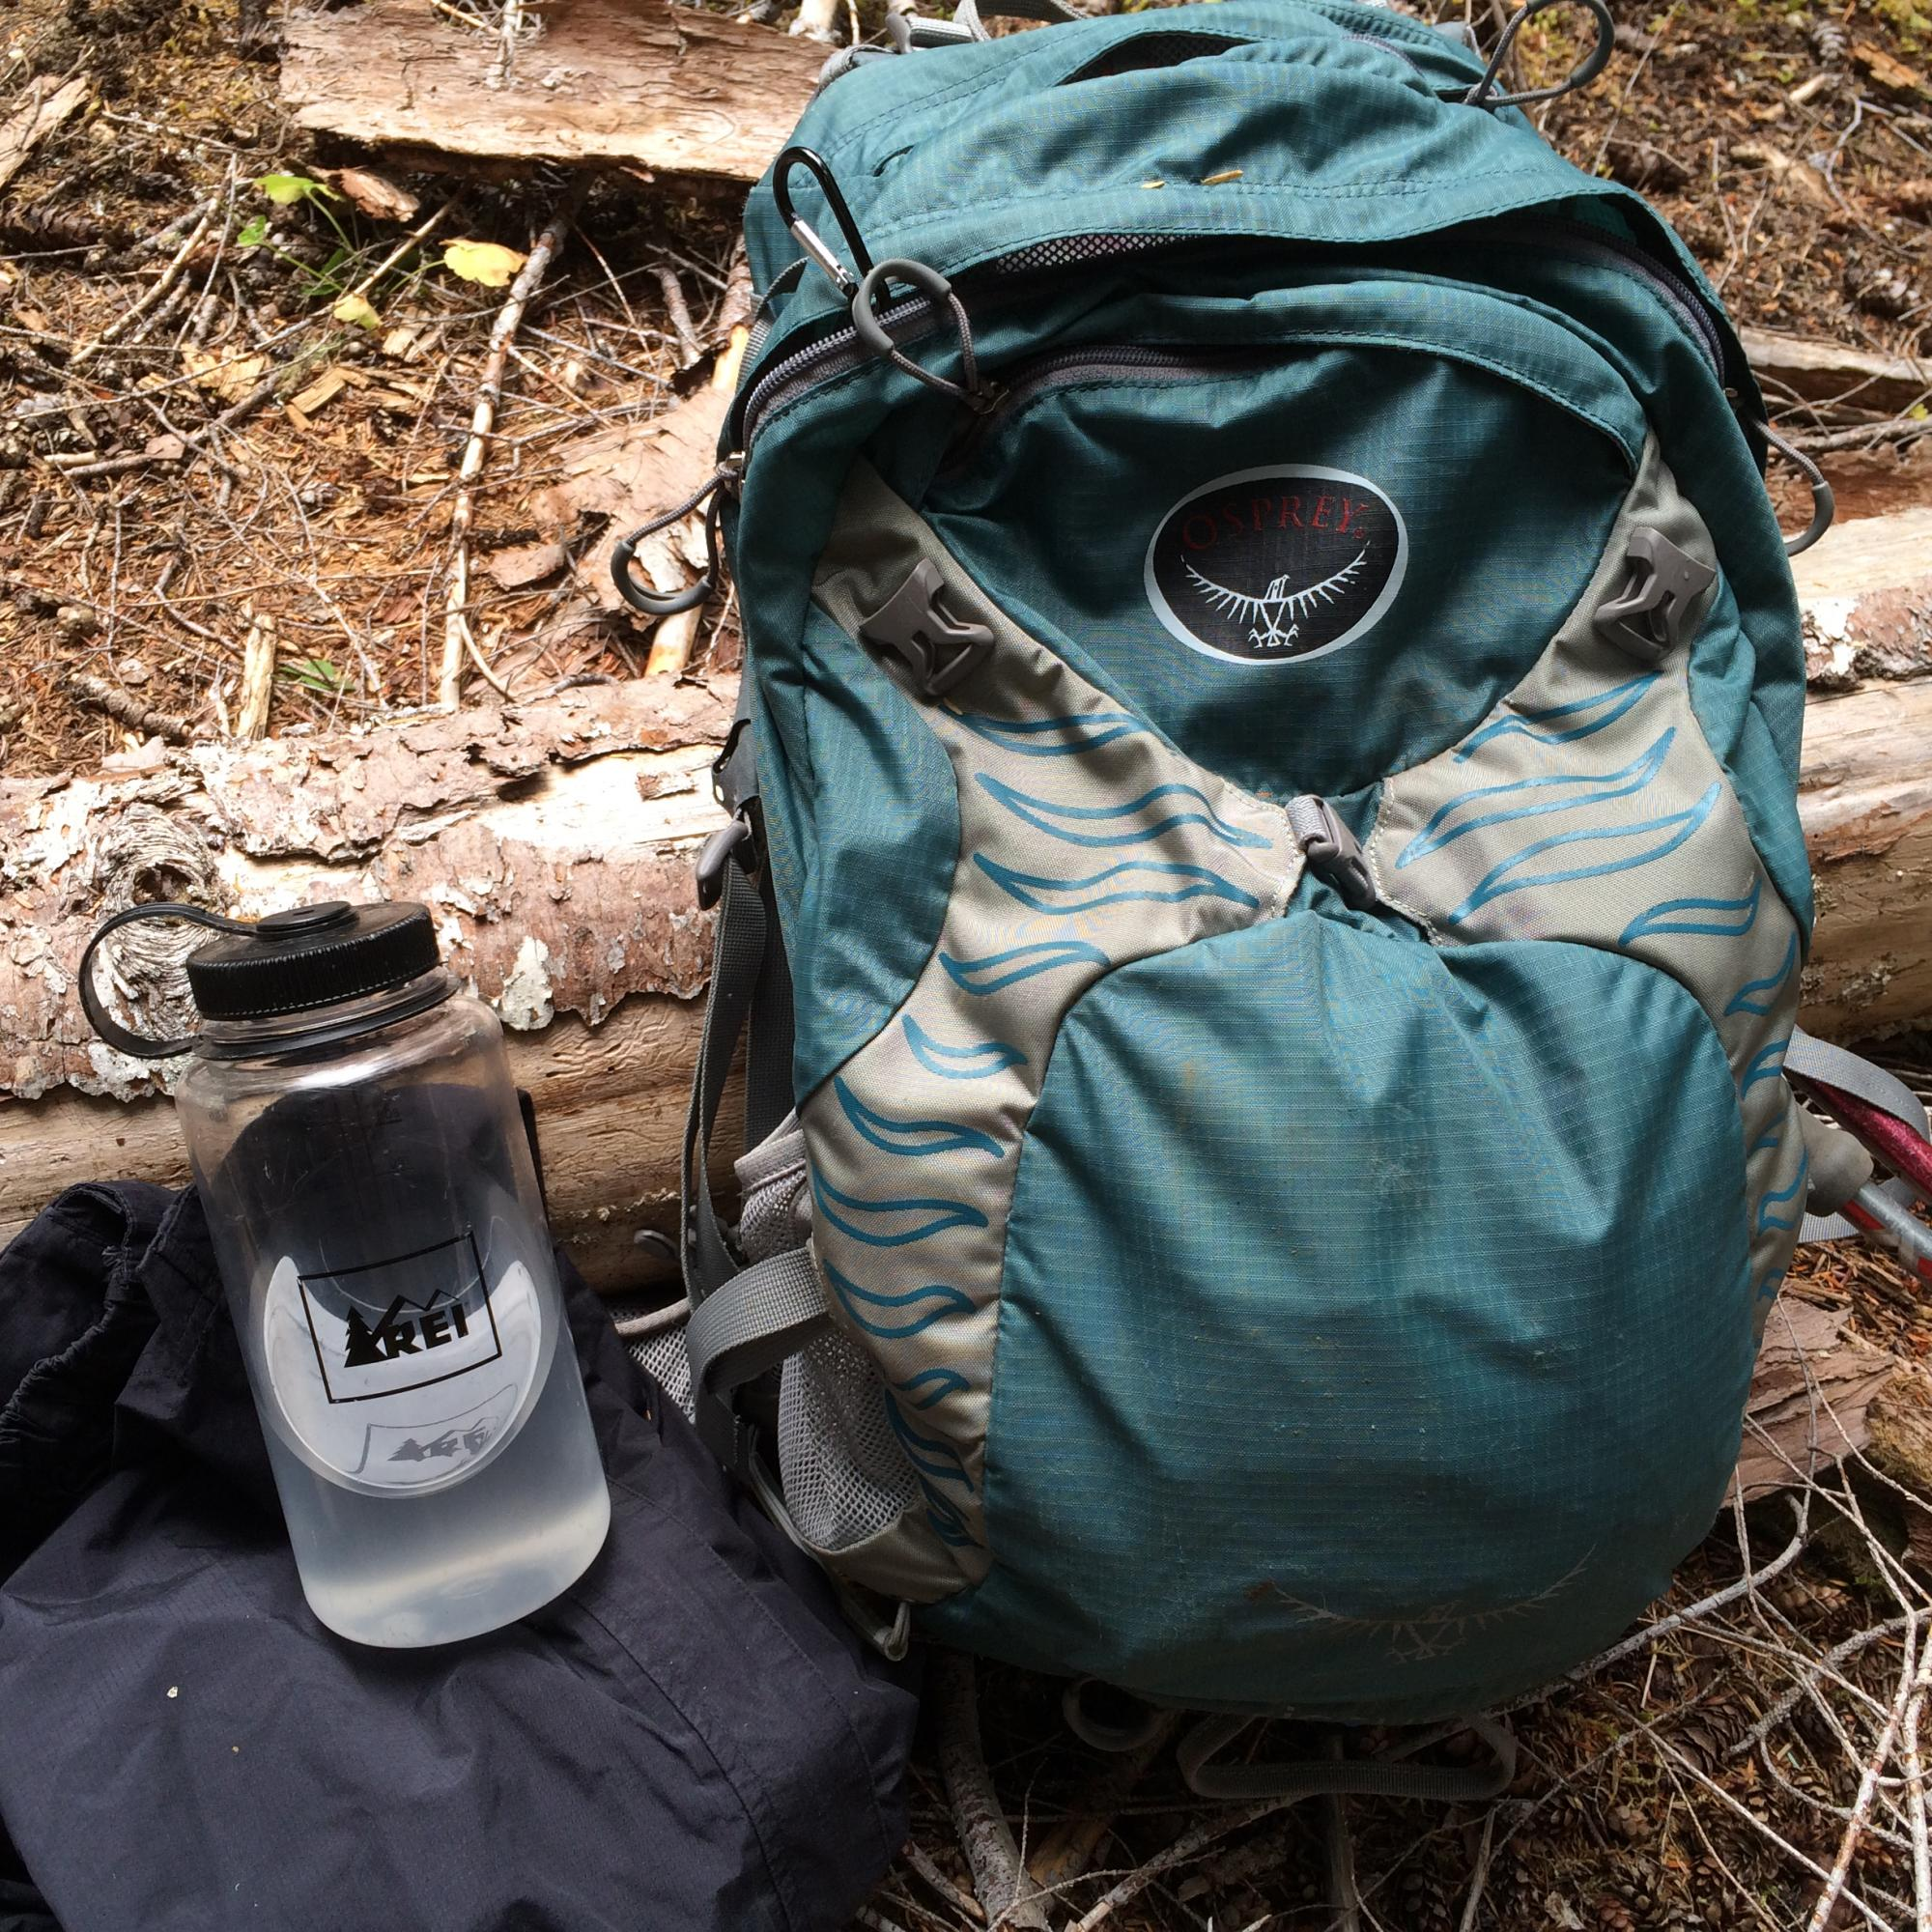 Carrying the ten essentials is one way to combat trail stress.